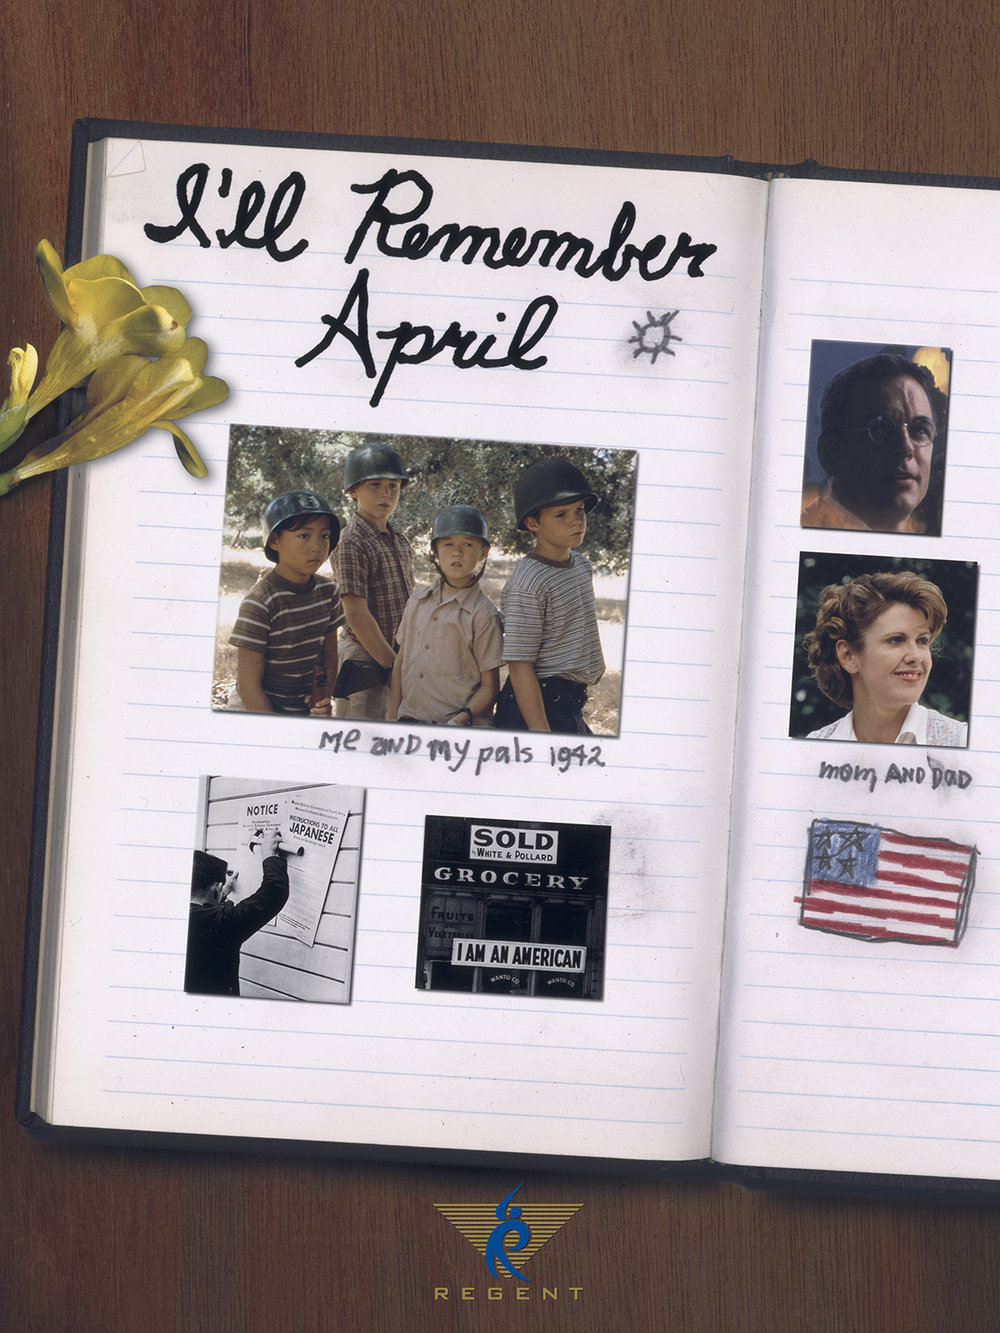 Here-IllRememberApril-Full-Image-en-US.jpg